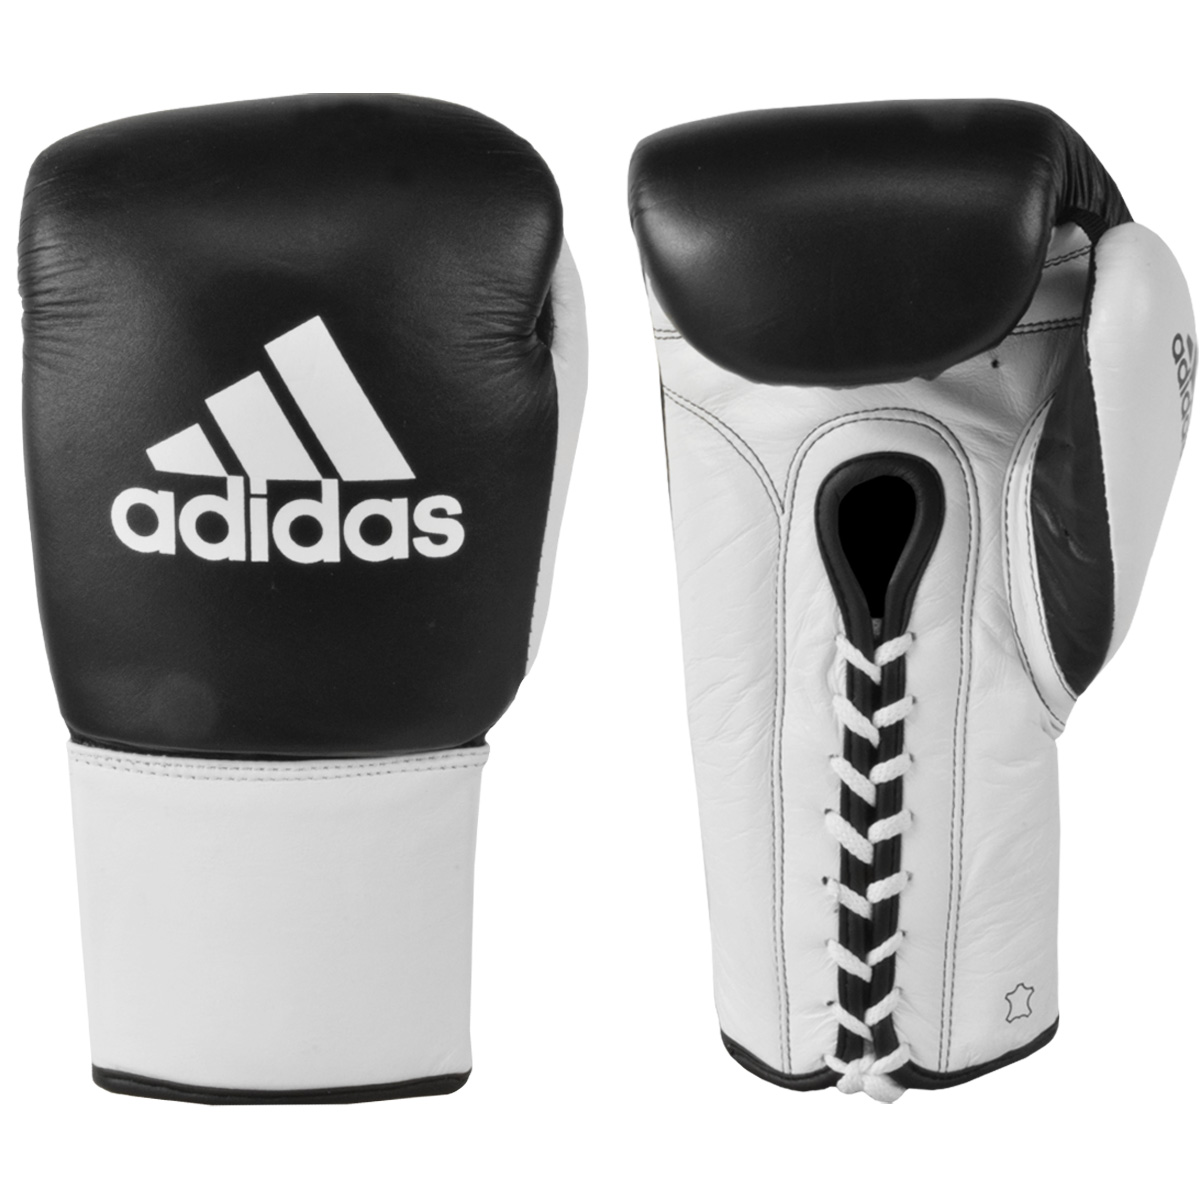 adidas boxing gloves adidas-glory-professional-lace-up-leather-boxing-gloves ISDGEGV